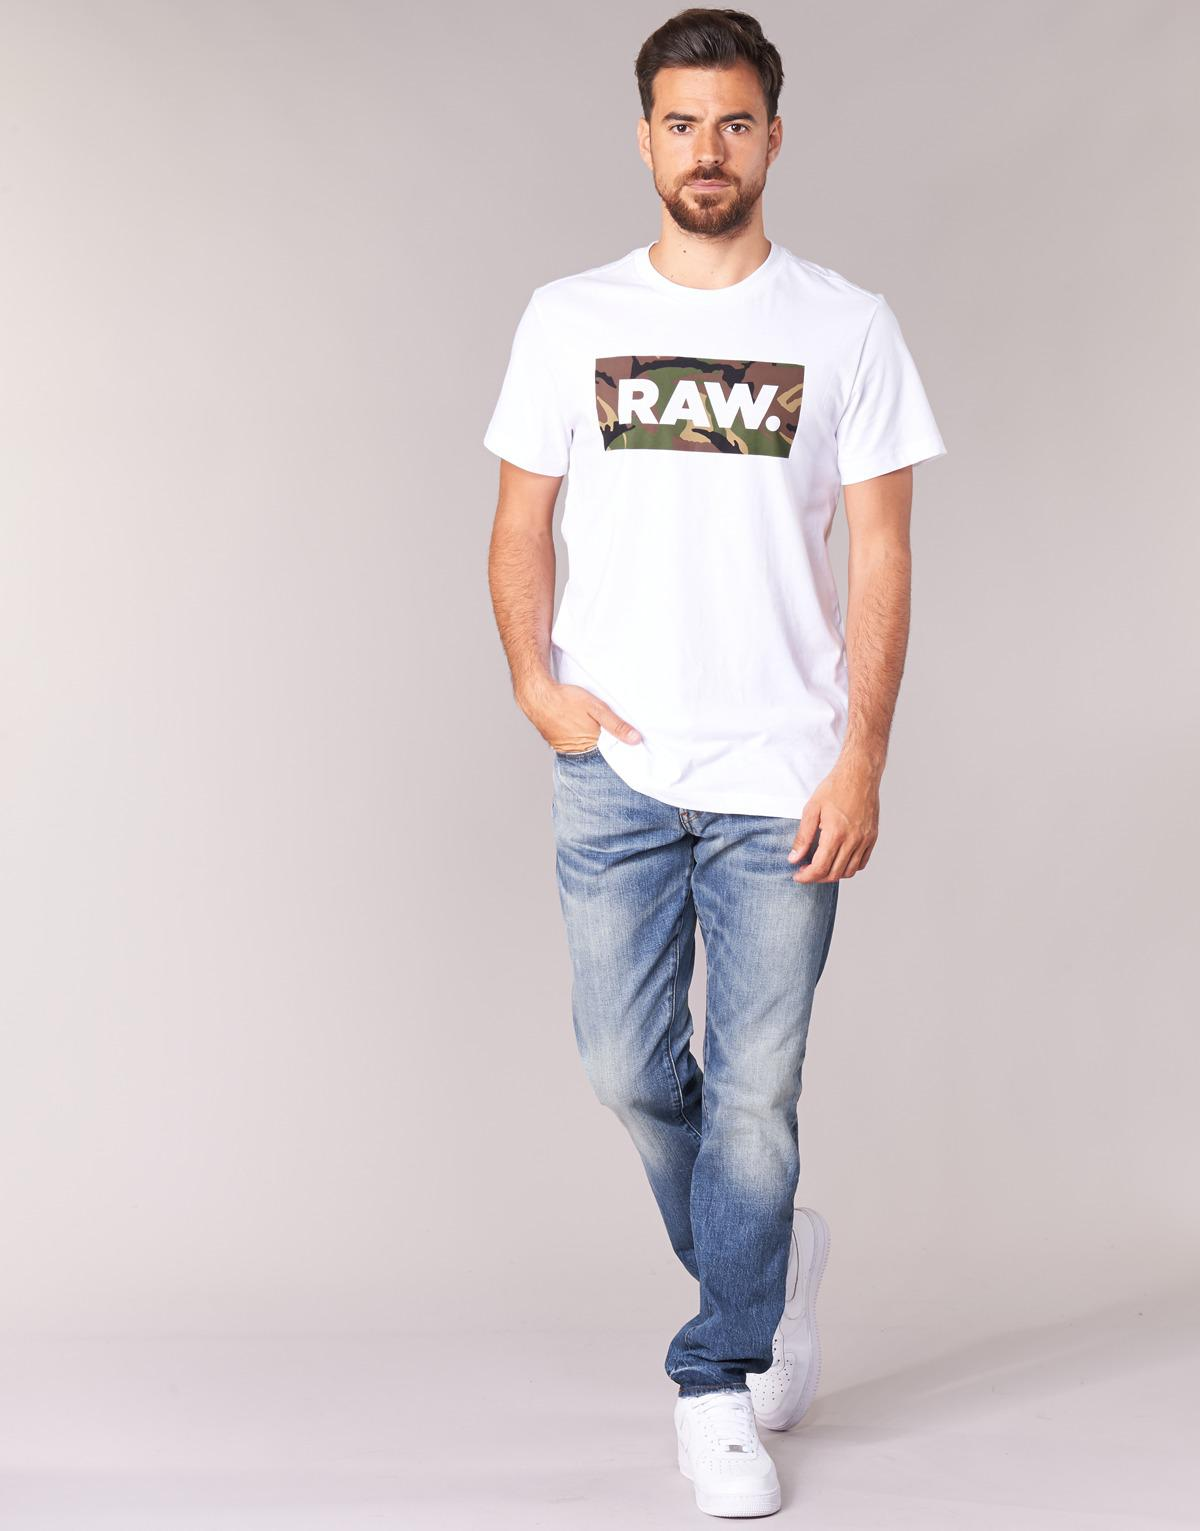 19e7c2e6529 G-Star RAW 3301 Tapered Jeans in Blue for Men - Lyst